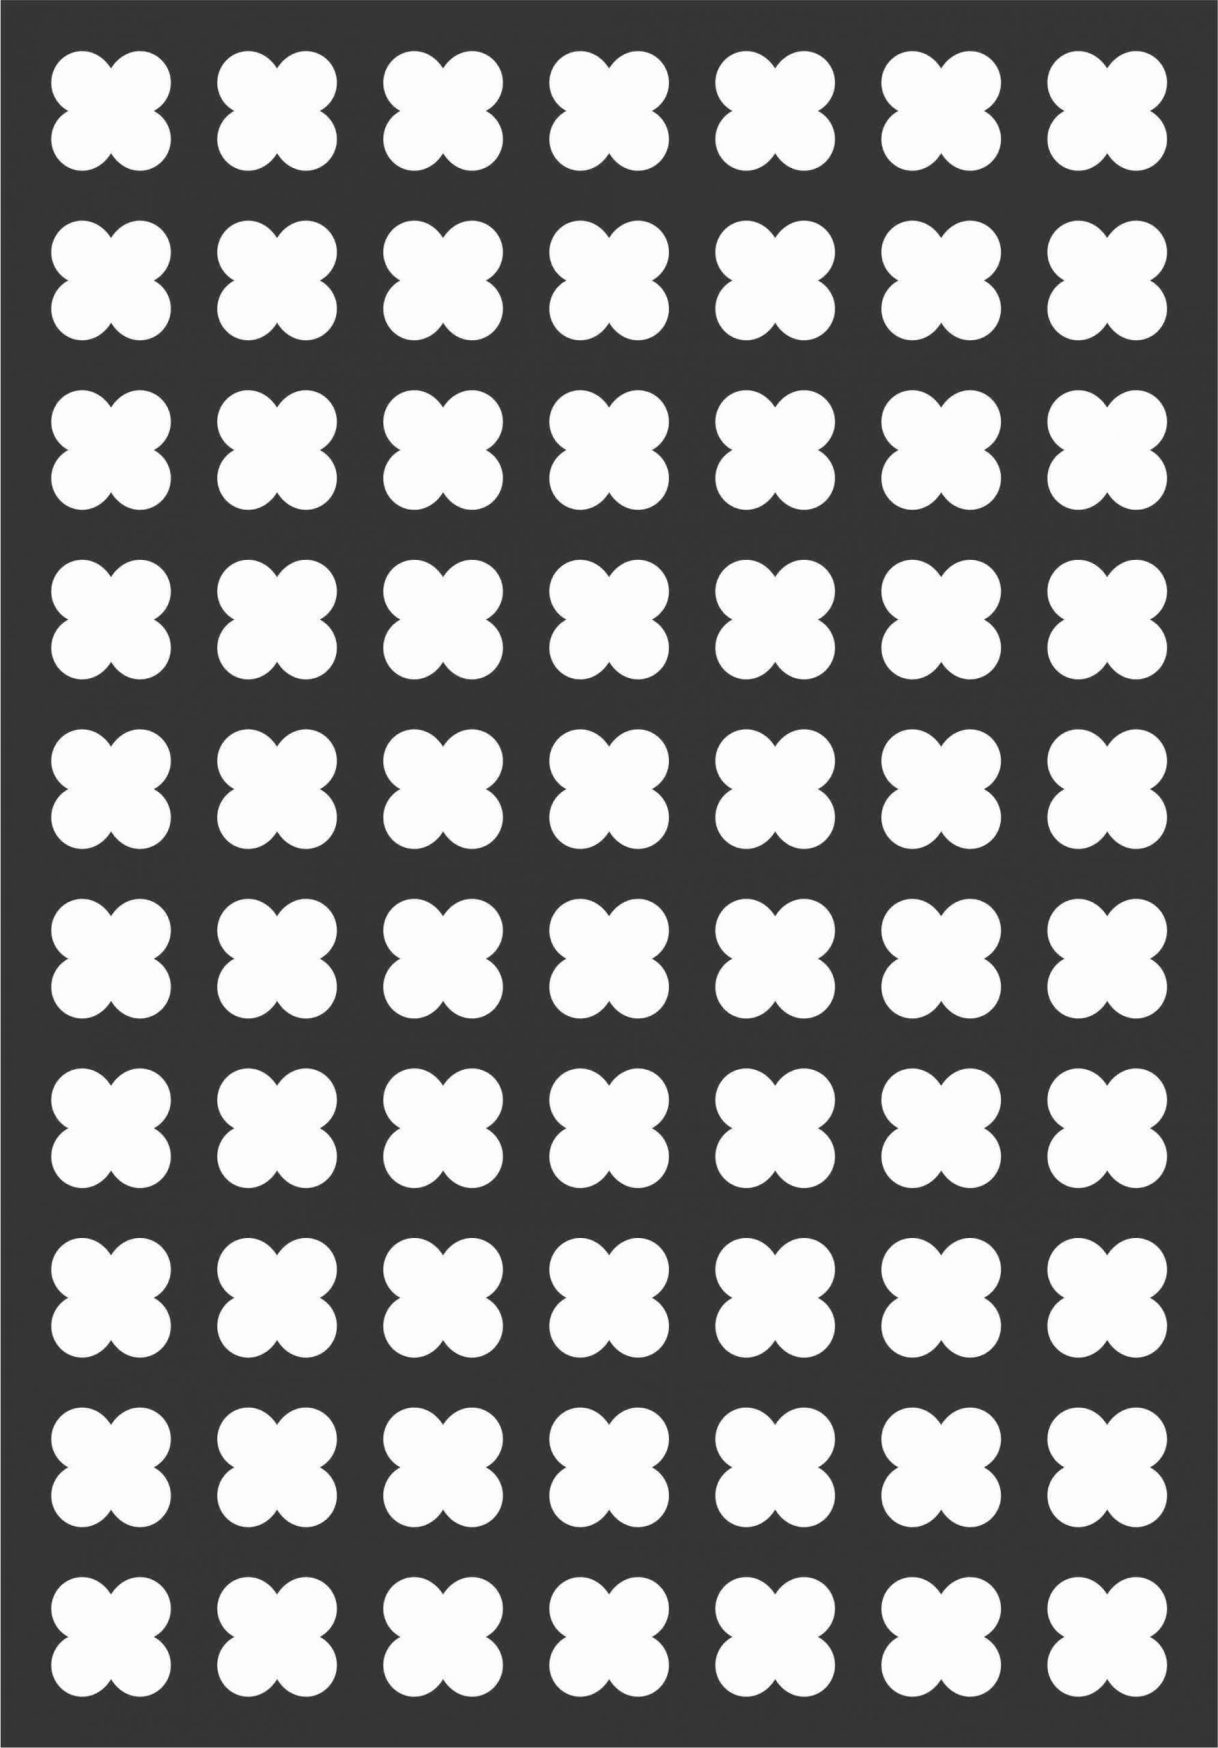 Floral Screen Patterns Design 91 Free DXF File